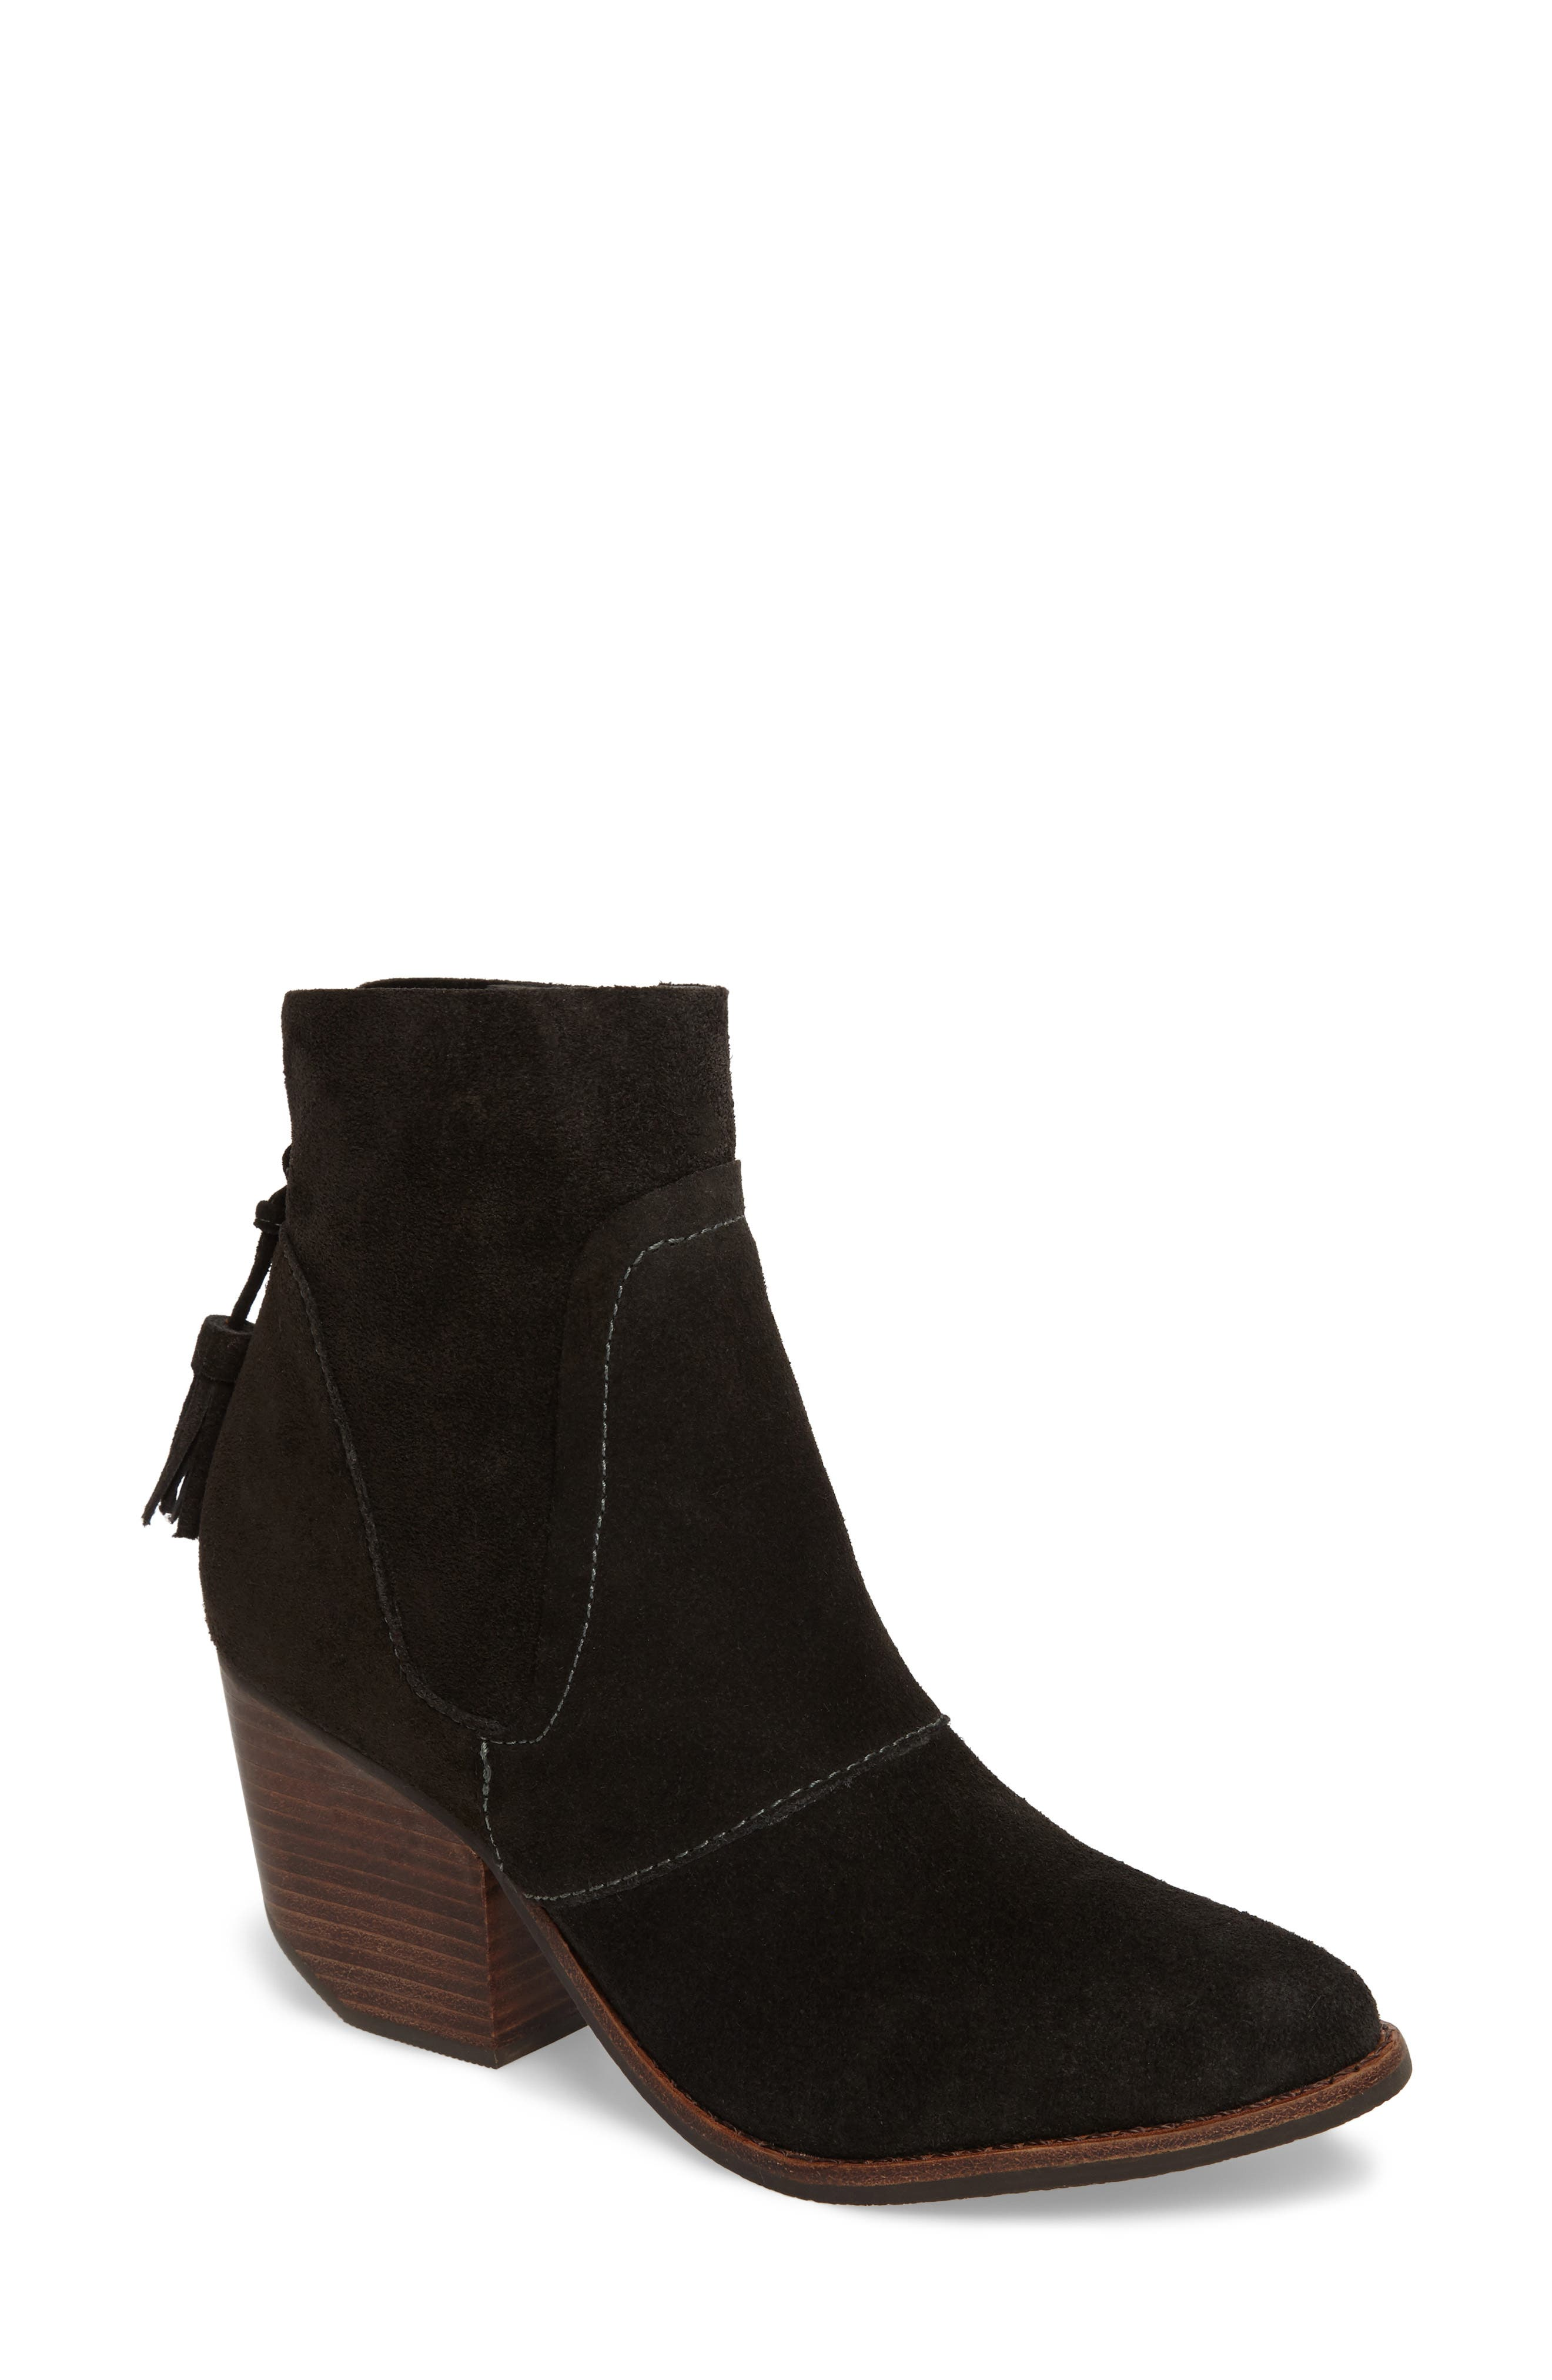 Laney Notched Heel Bootie,                             Main thumbnail 1, color,                             Forest Suede